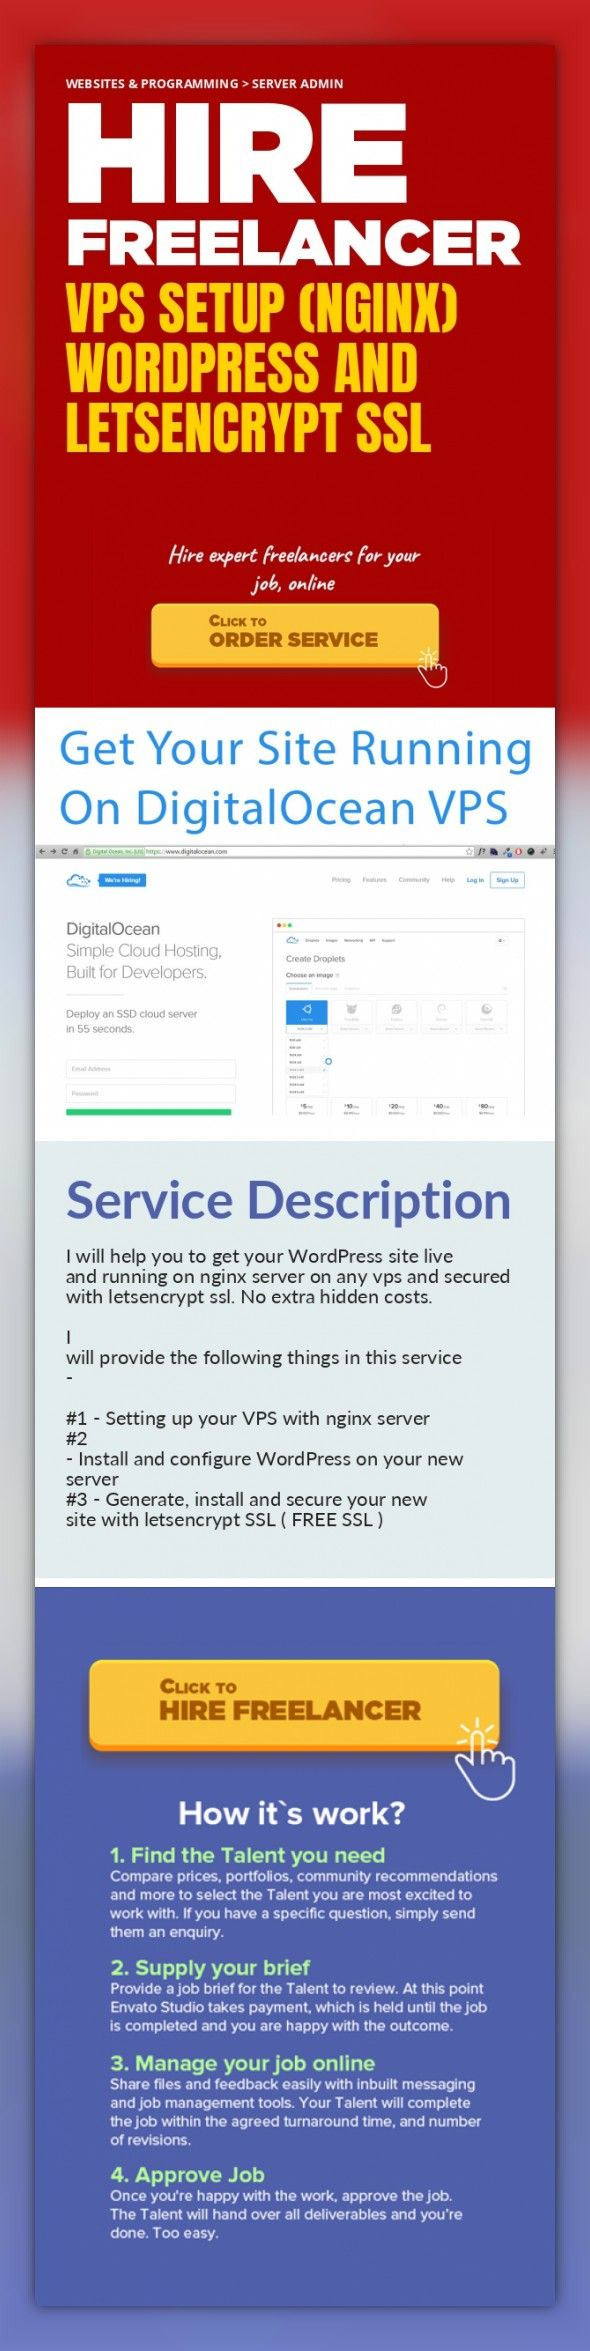 Best 25 ssl security ideas on pinterest fitness band 3 general vps setup nginx wordpress and letsencrypt ssl websites programming server admin i will help you to get your wordpress site live and running on nginx 1betcityfo Image collections